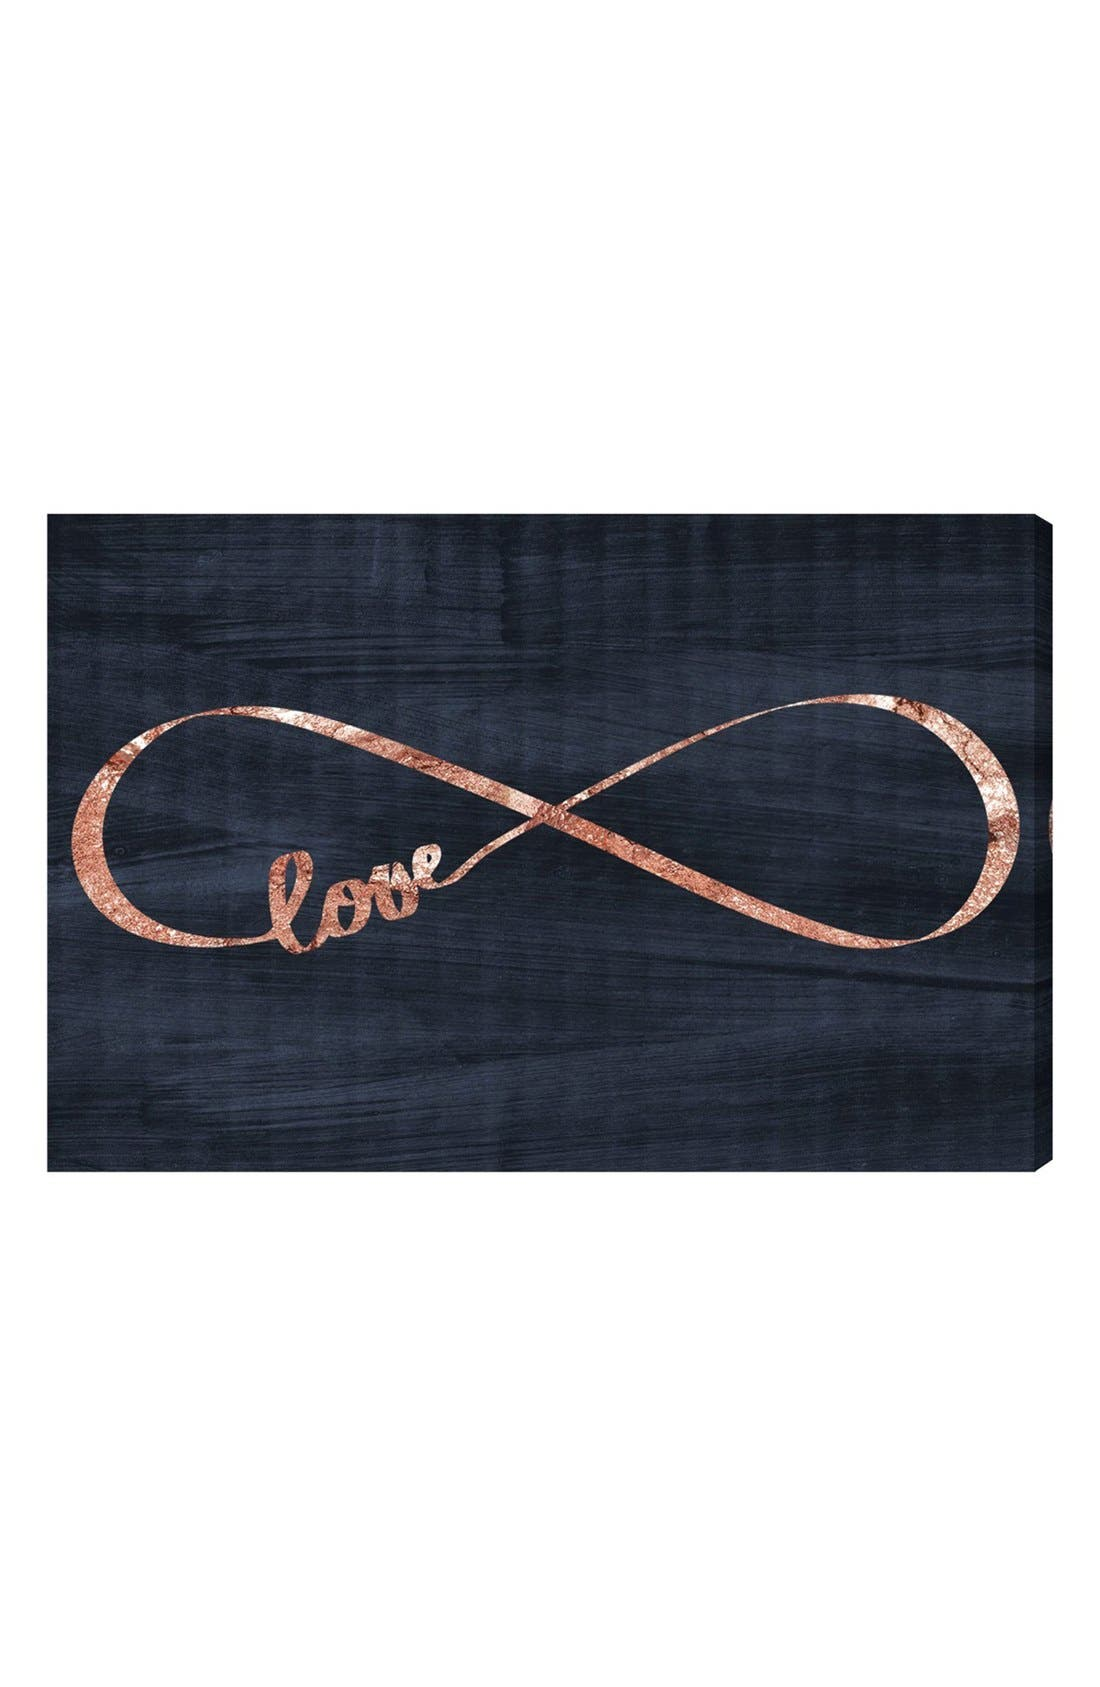 Oliver Gal 'Infinite Love' Canvas Wall Art